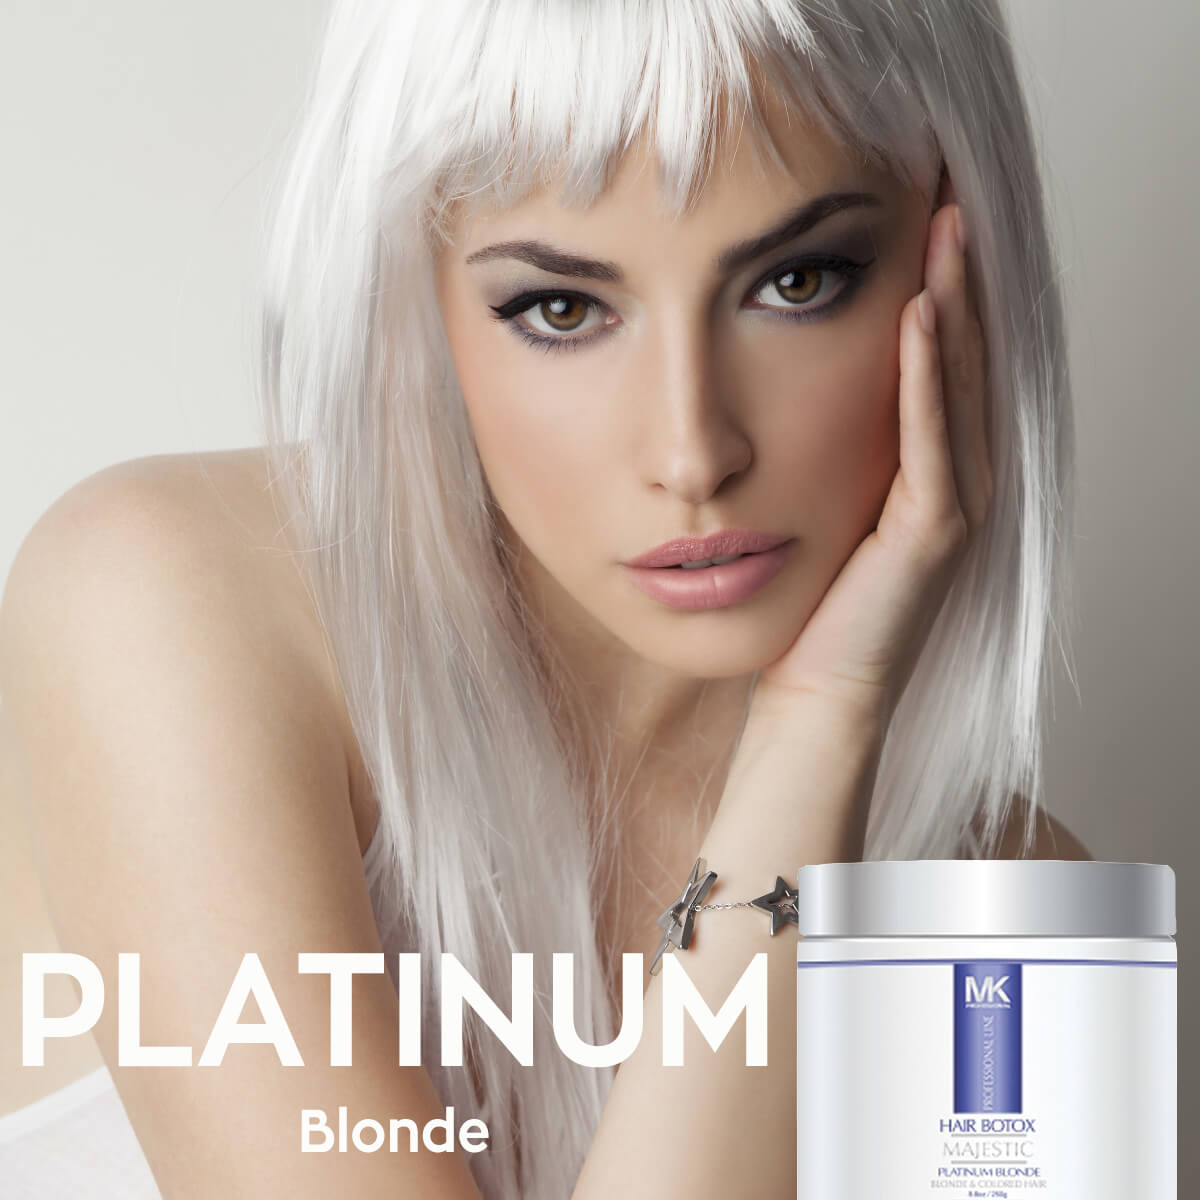 Blondes Rejoice The New Majestic Keratin Platinum Blonde Hair